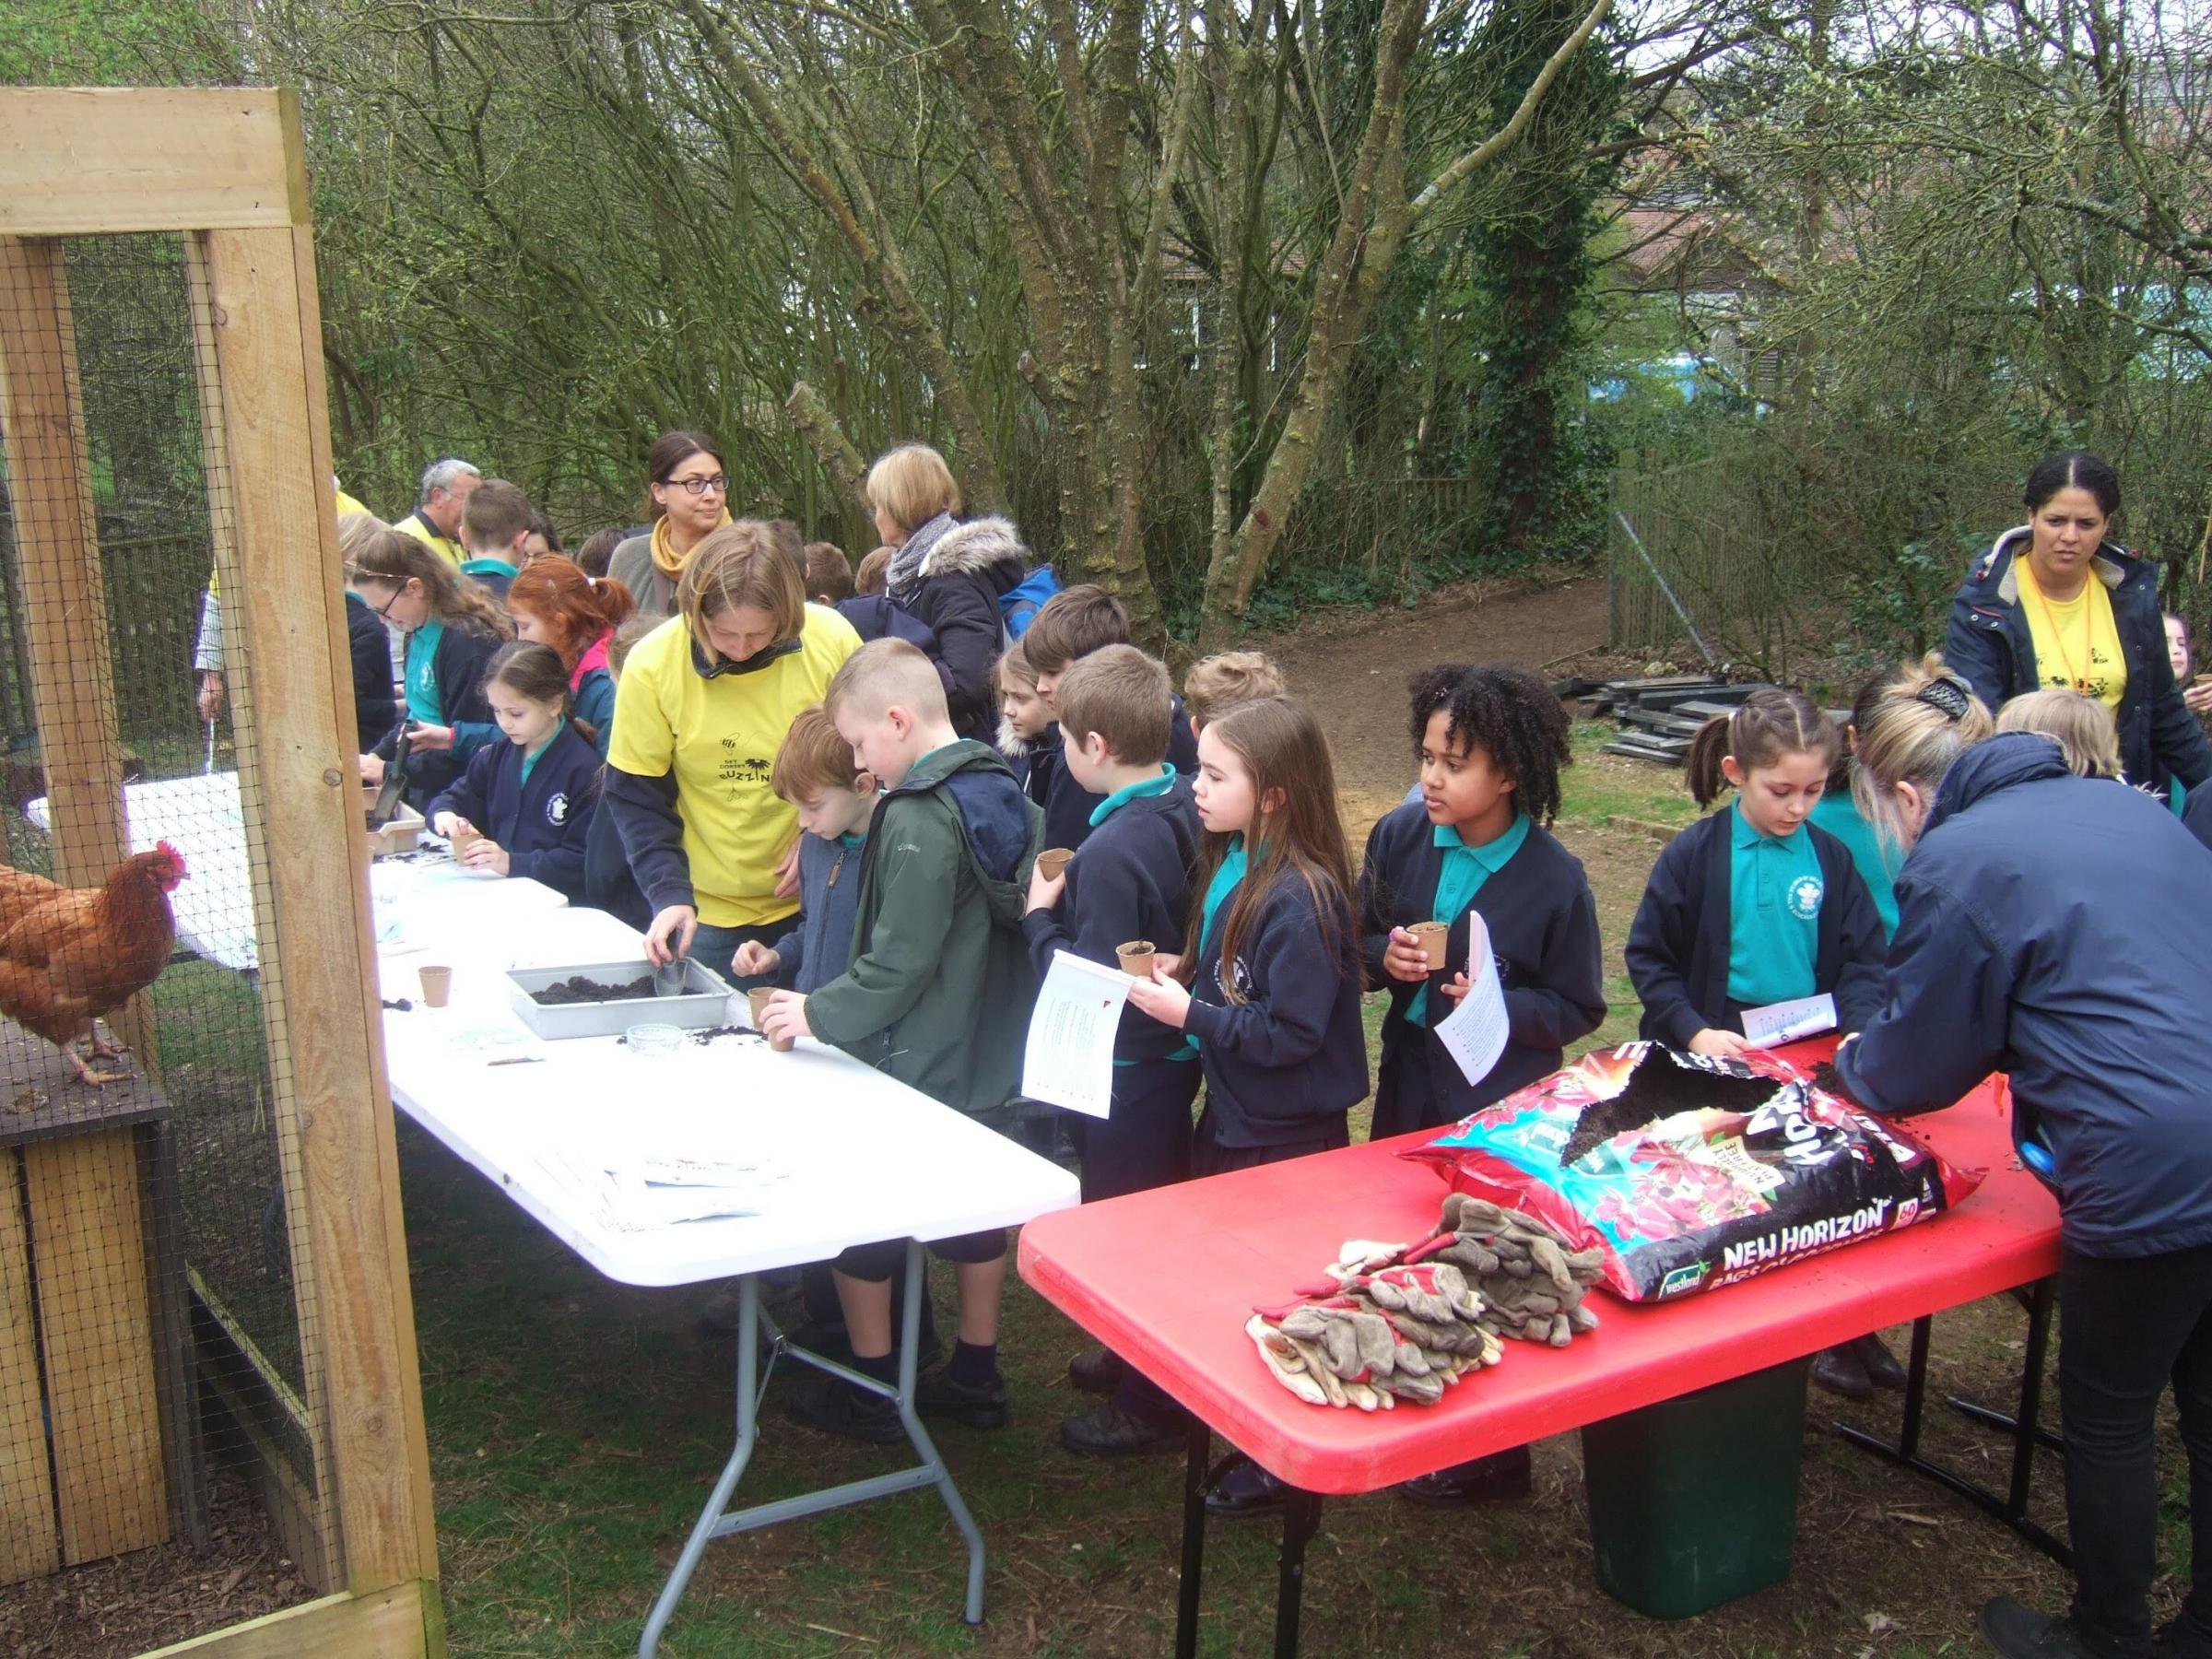 Dorset Wildlife Trust's Get Dorset Buzzing campaign gets 1,500 people to sign up